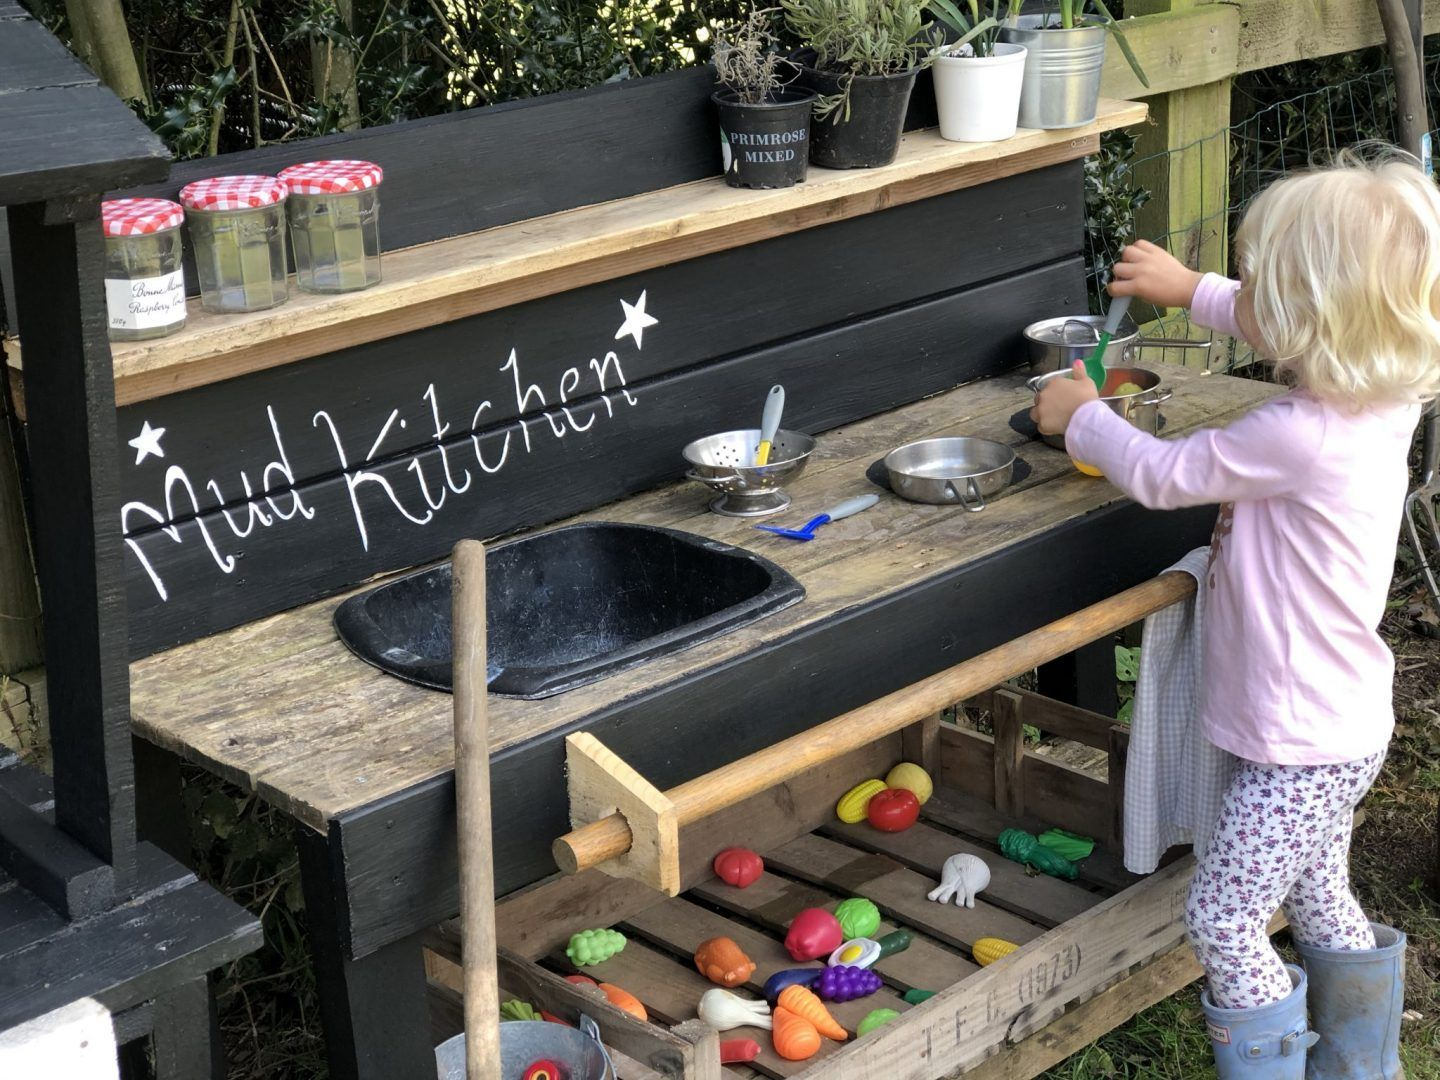 Diy Mud Kitchen Just A Little Build Outdoor Play Areas Outdoor Play Areas Outdoor Play Spaces Outdoor Play S Diy Mud Kitchen Mud Kitchen Mud Kitchen For Kids